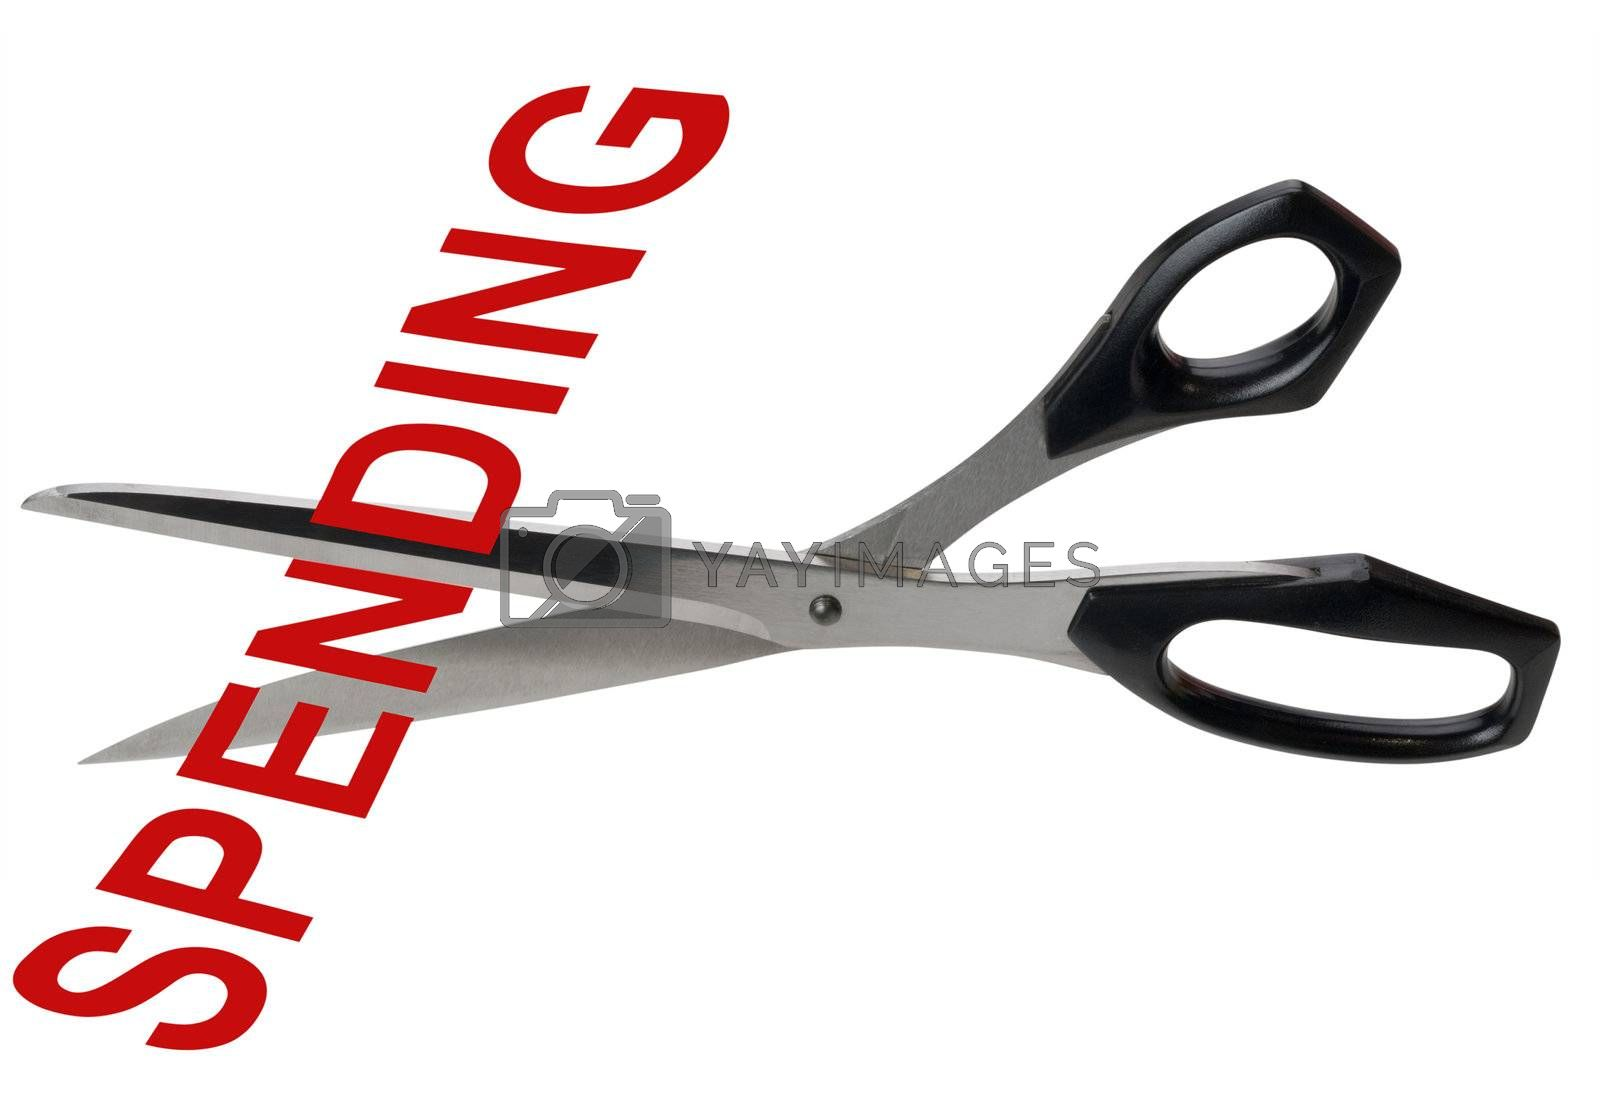 Royalty free image of Spending cuts by f/2sumicron